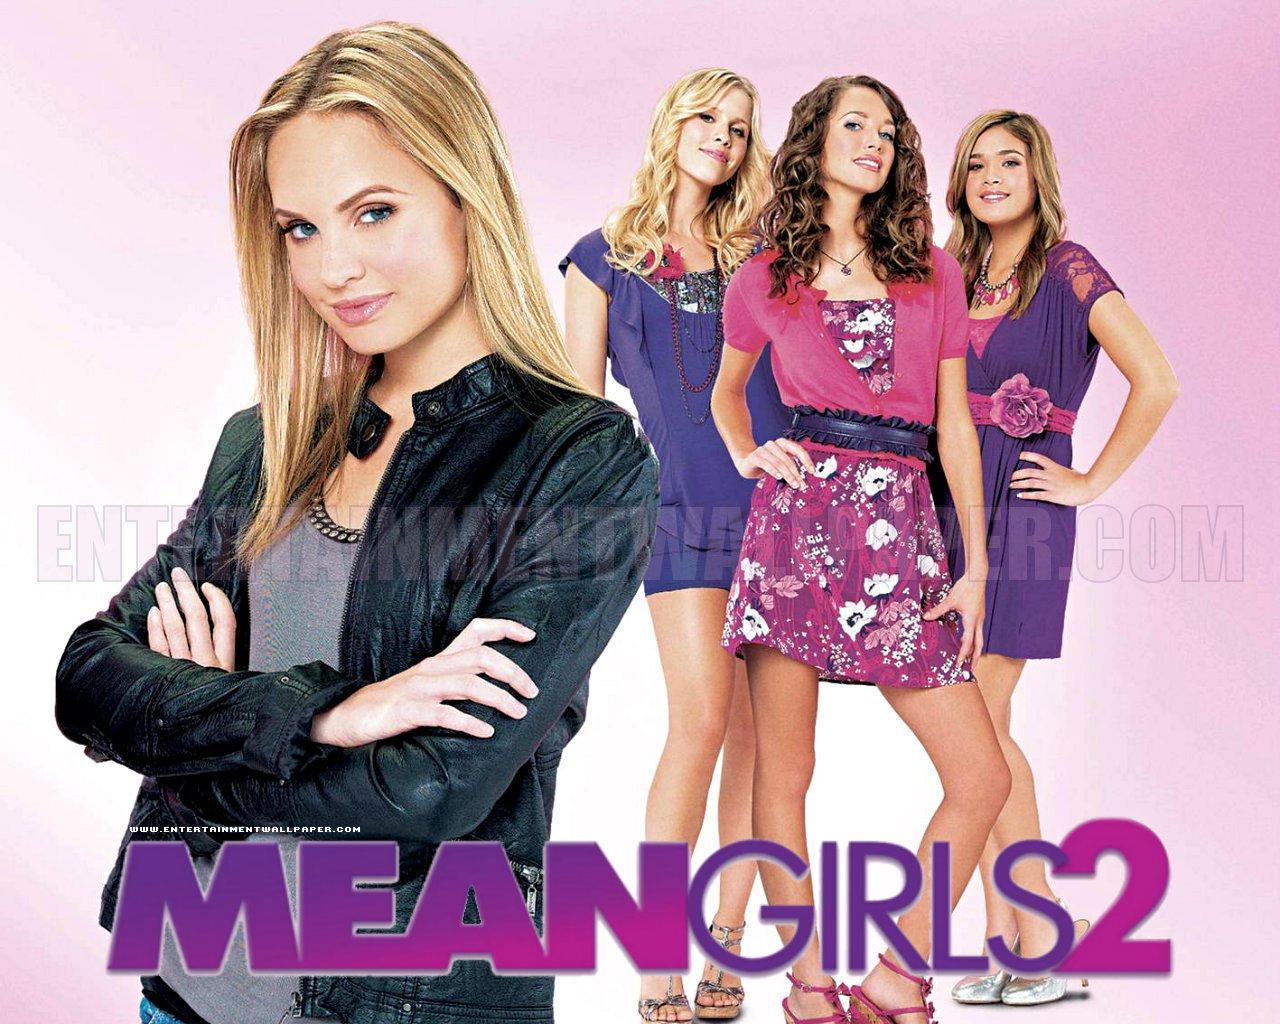 which character are you from mean girls 2?